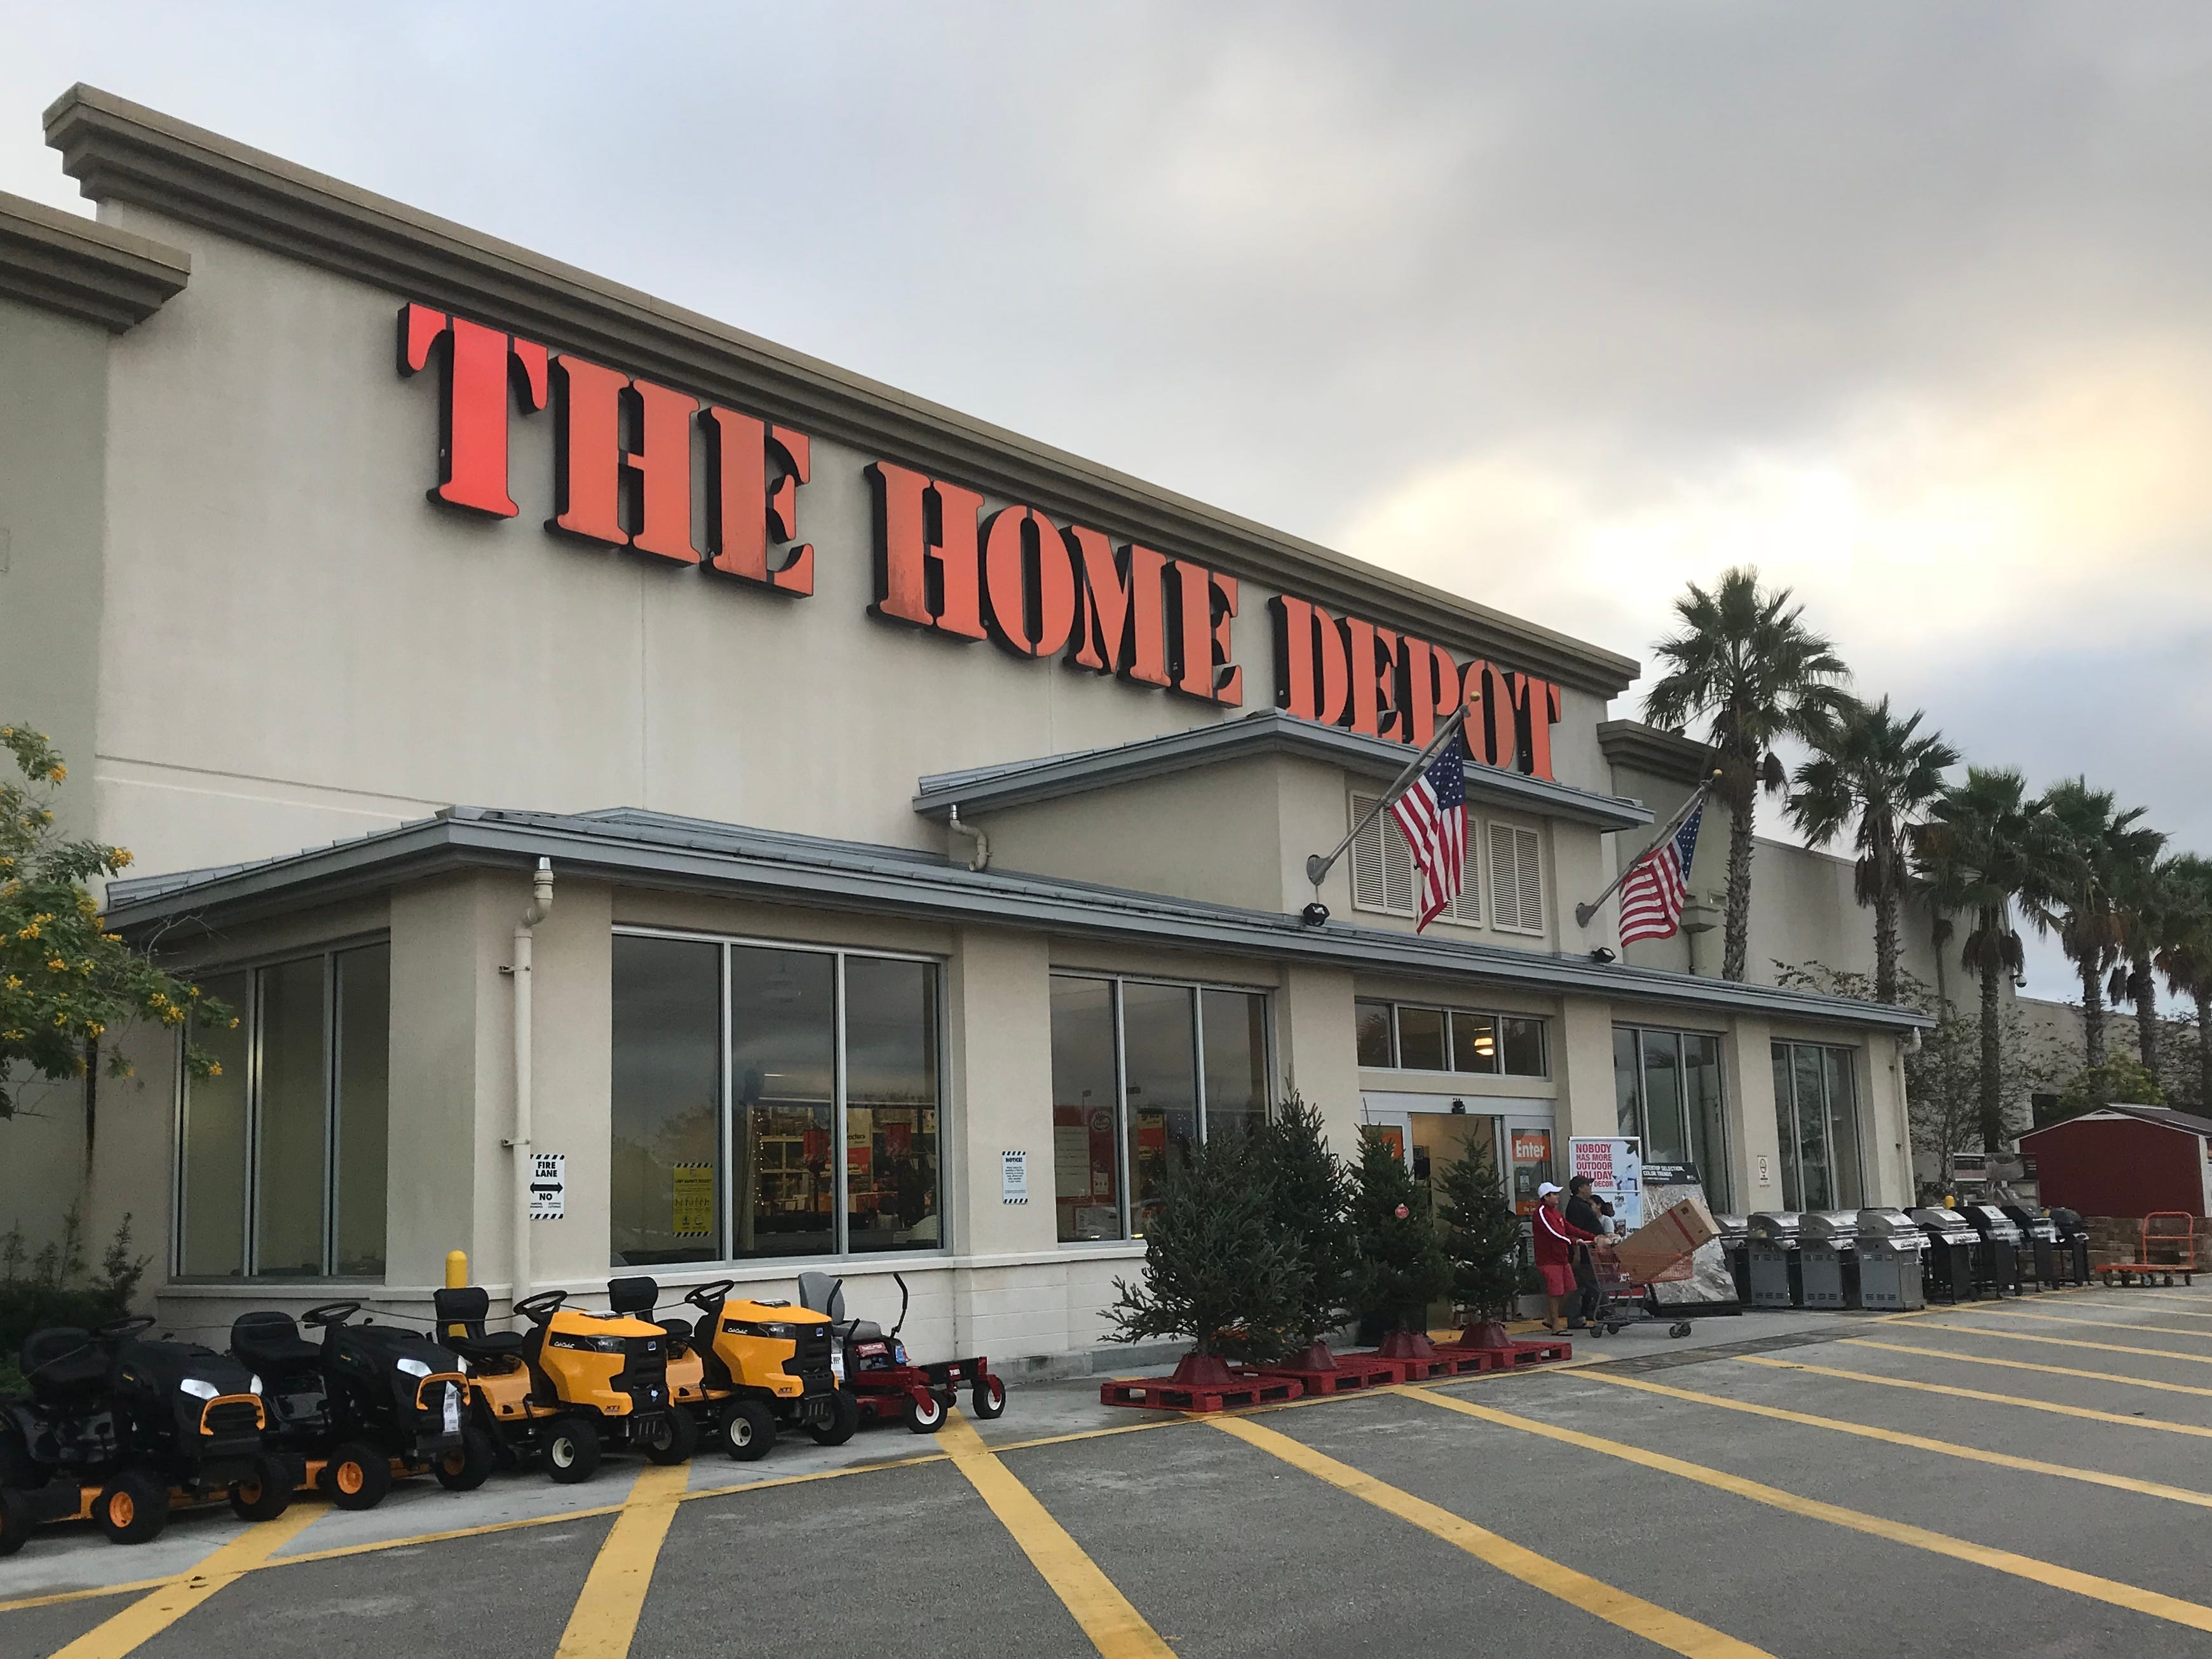 Home Depot has traditionally stayed closed on Thanksgiving.